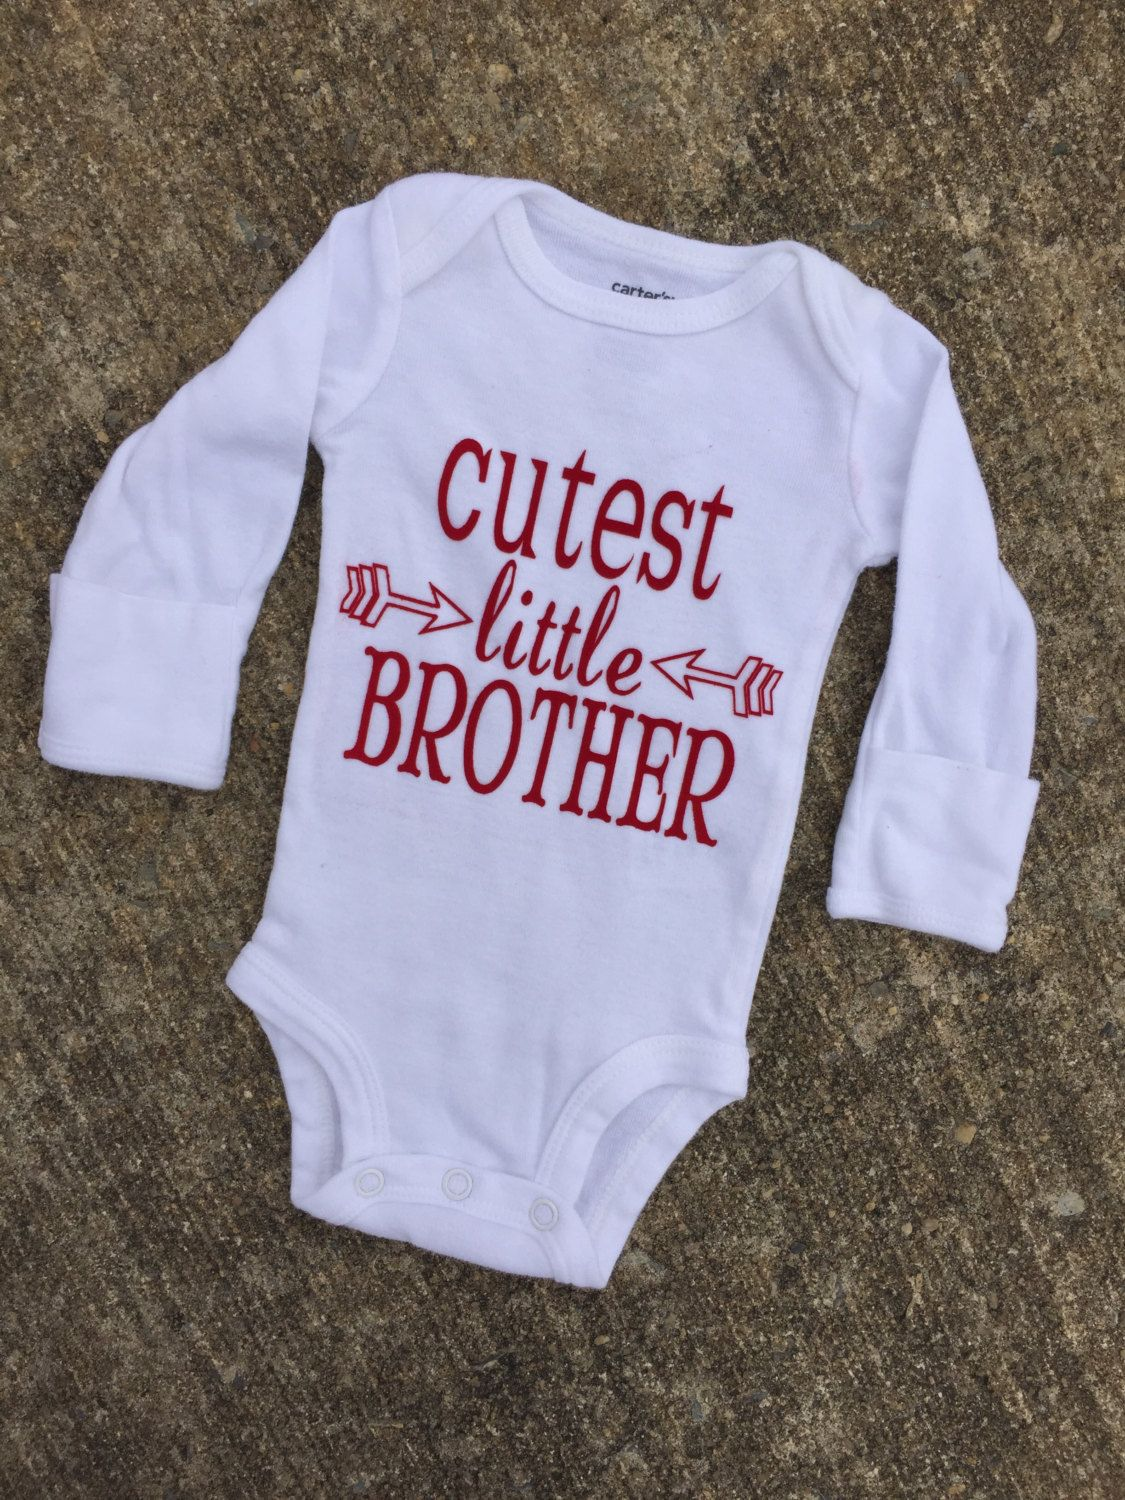 ebb9d0fd0 cutest little brother bodysuit, brother shirt, baby clothing, baby boy one  piece, arrows, cutest baby outfit, baby boy gifts, little brother by ...